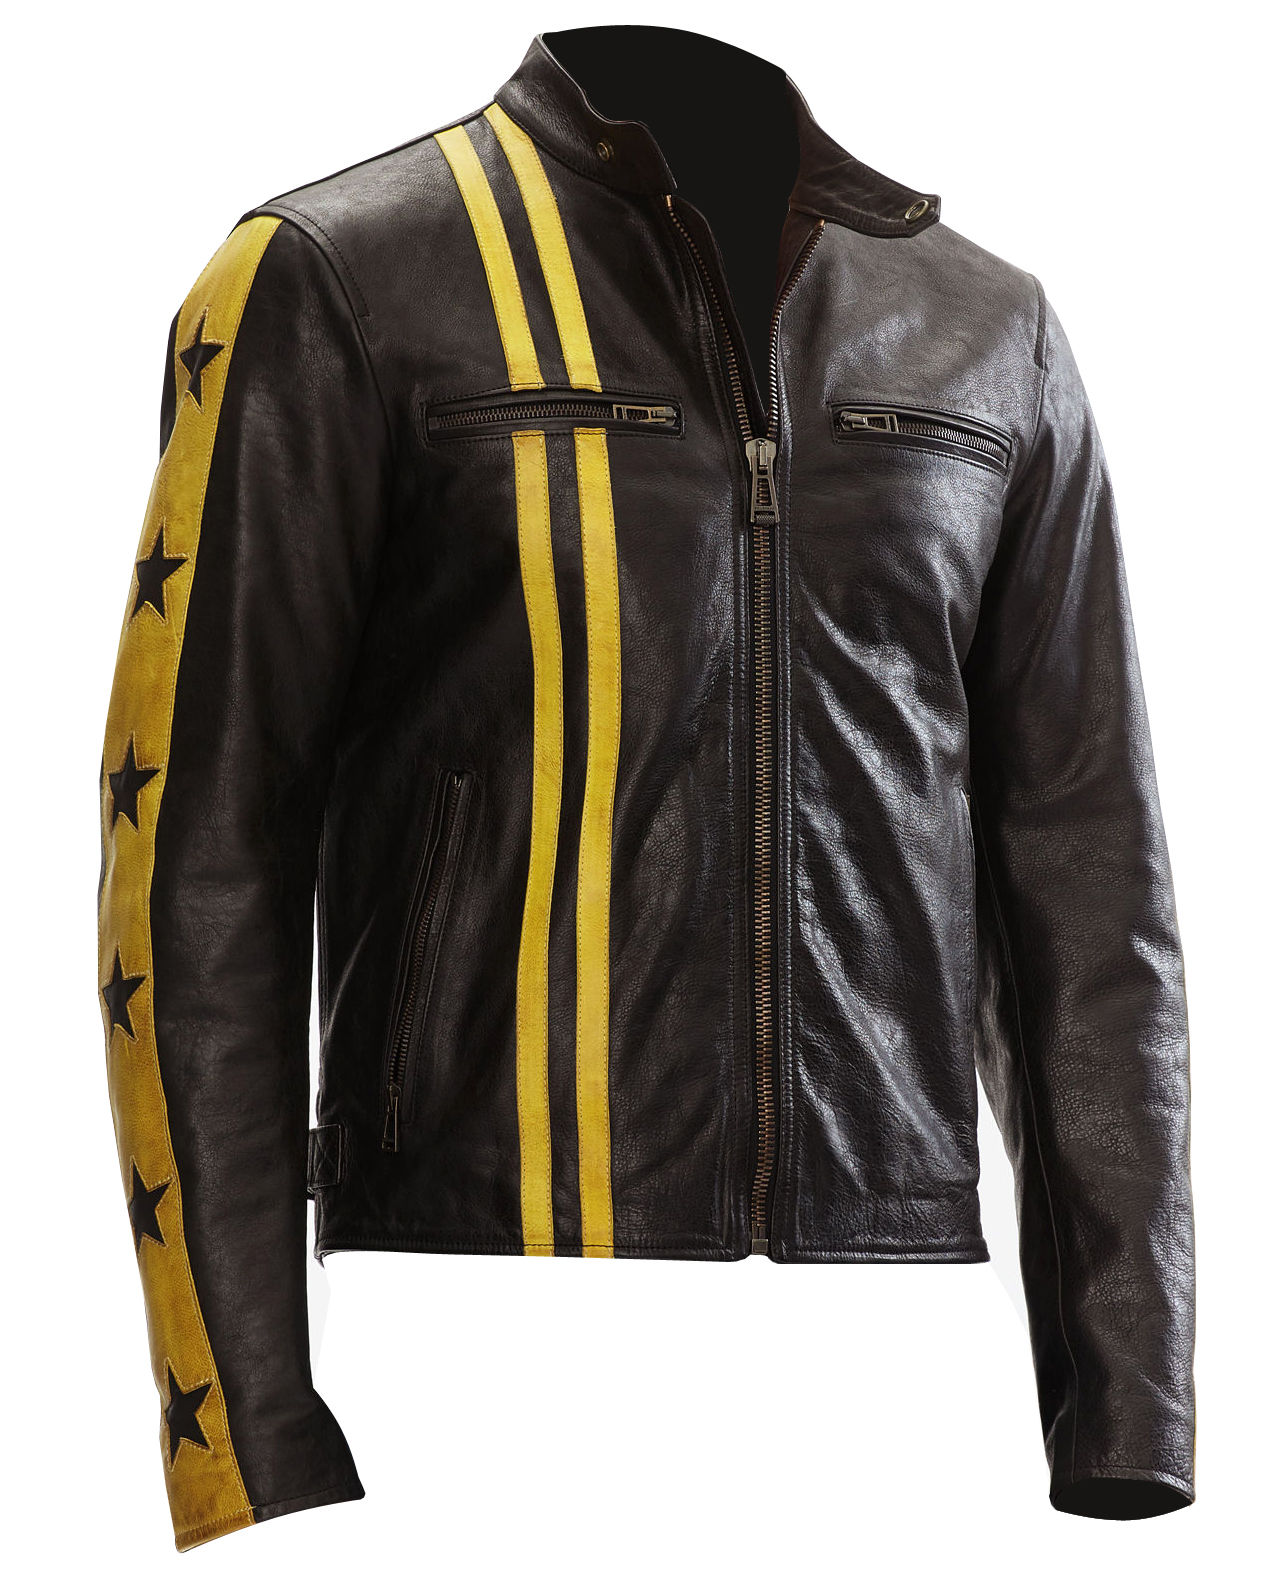 Mens Mashburn Biker Leather Jackets -1.jpg